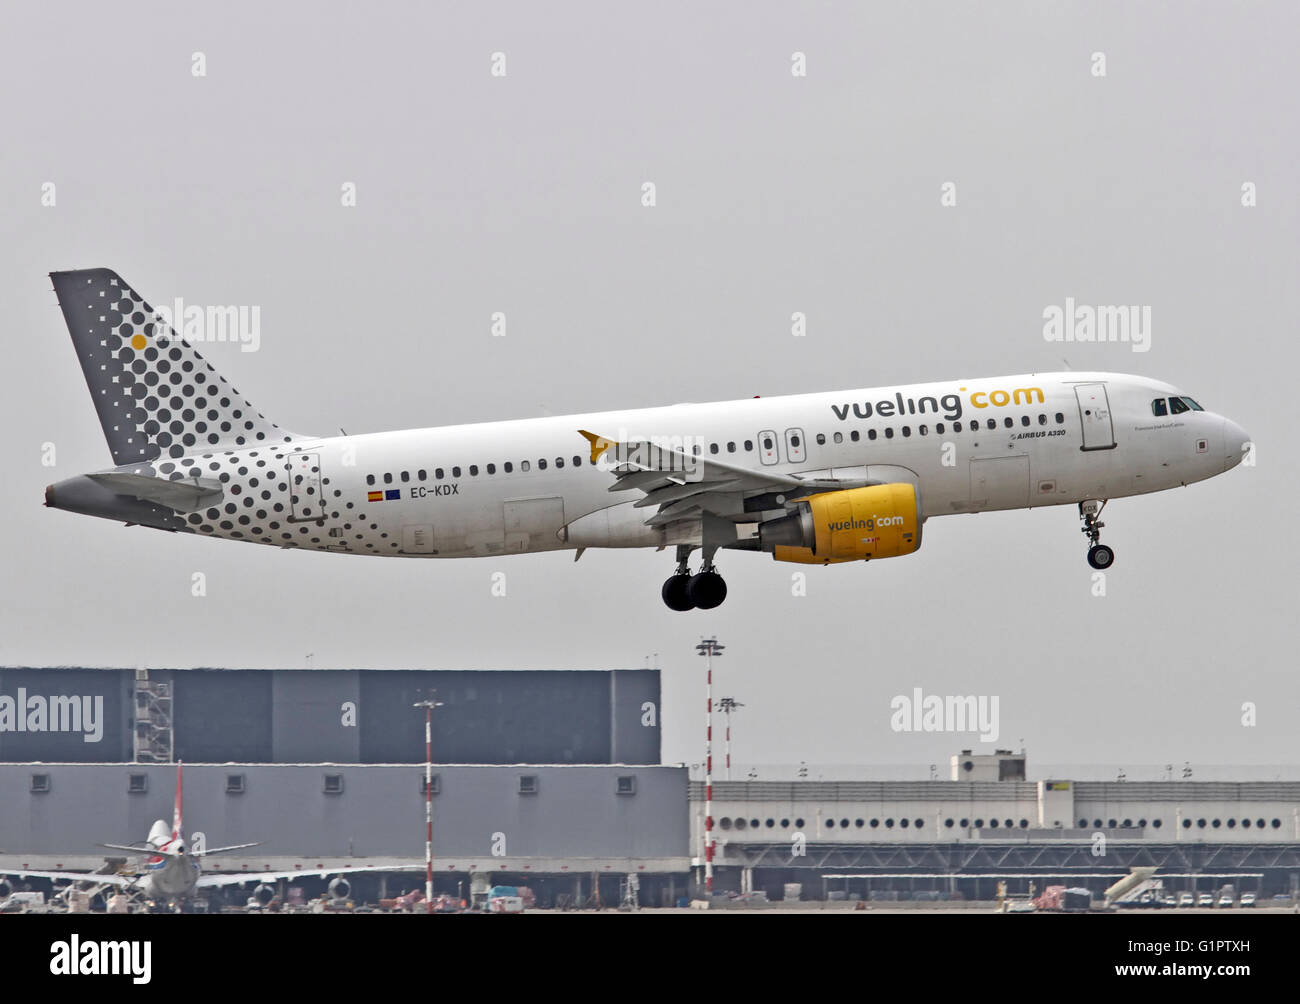 EC-KDX Vueling Airbus A320-216 Photographed at Malpensa airport, Milan, Italy - Stock Image